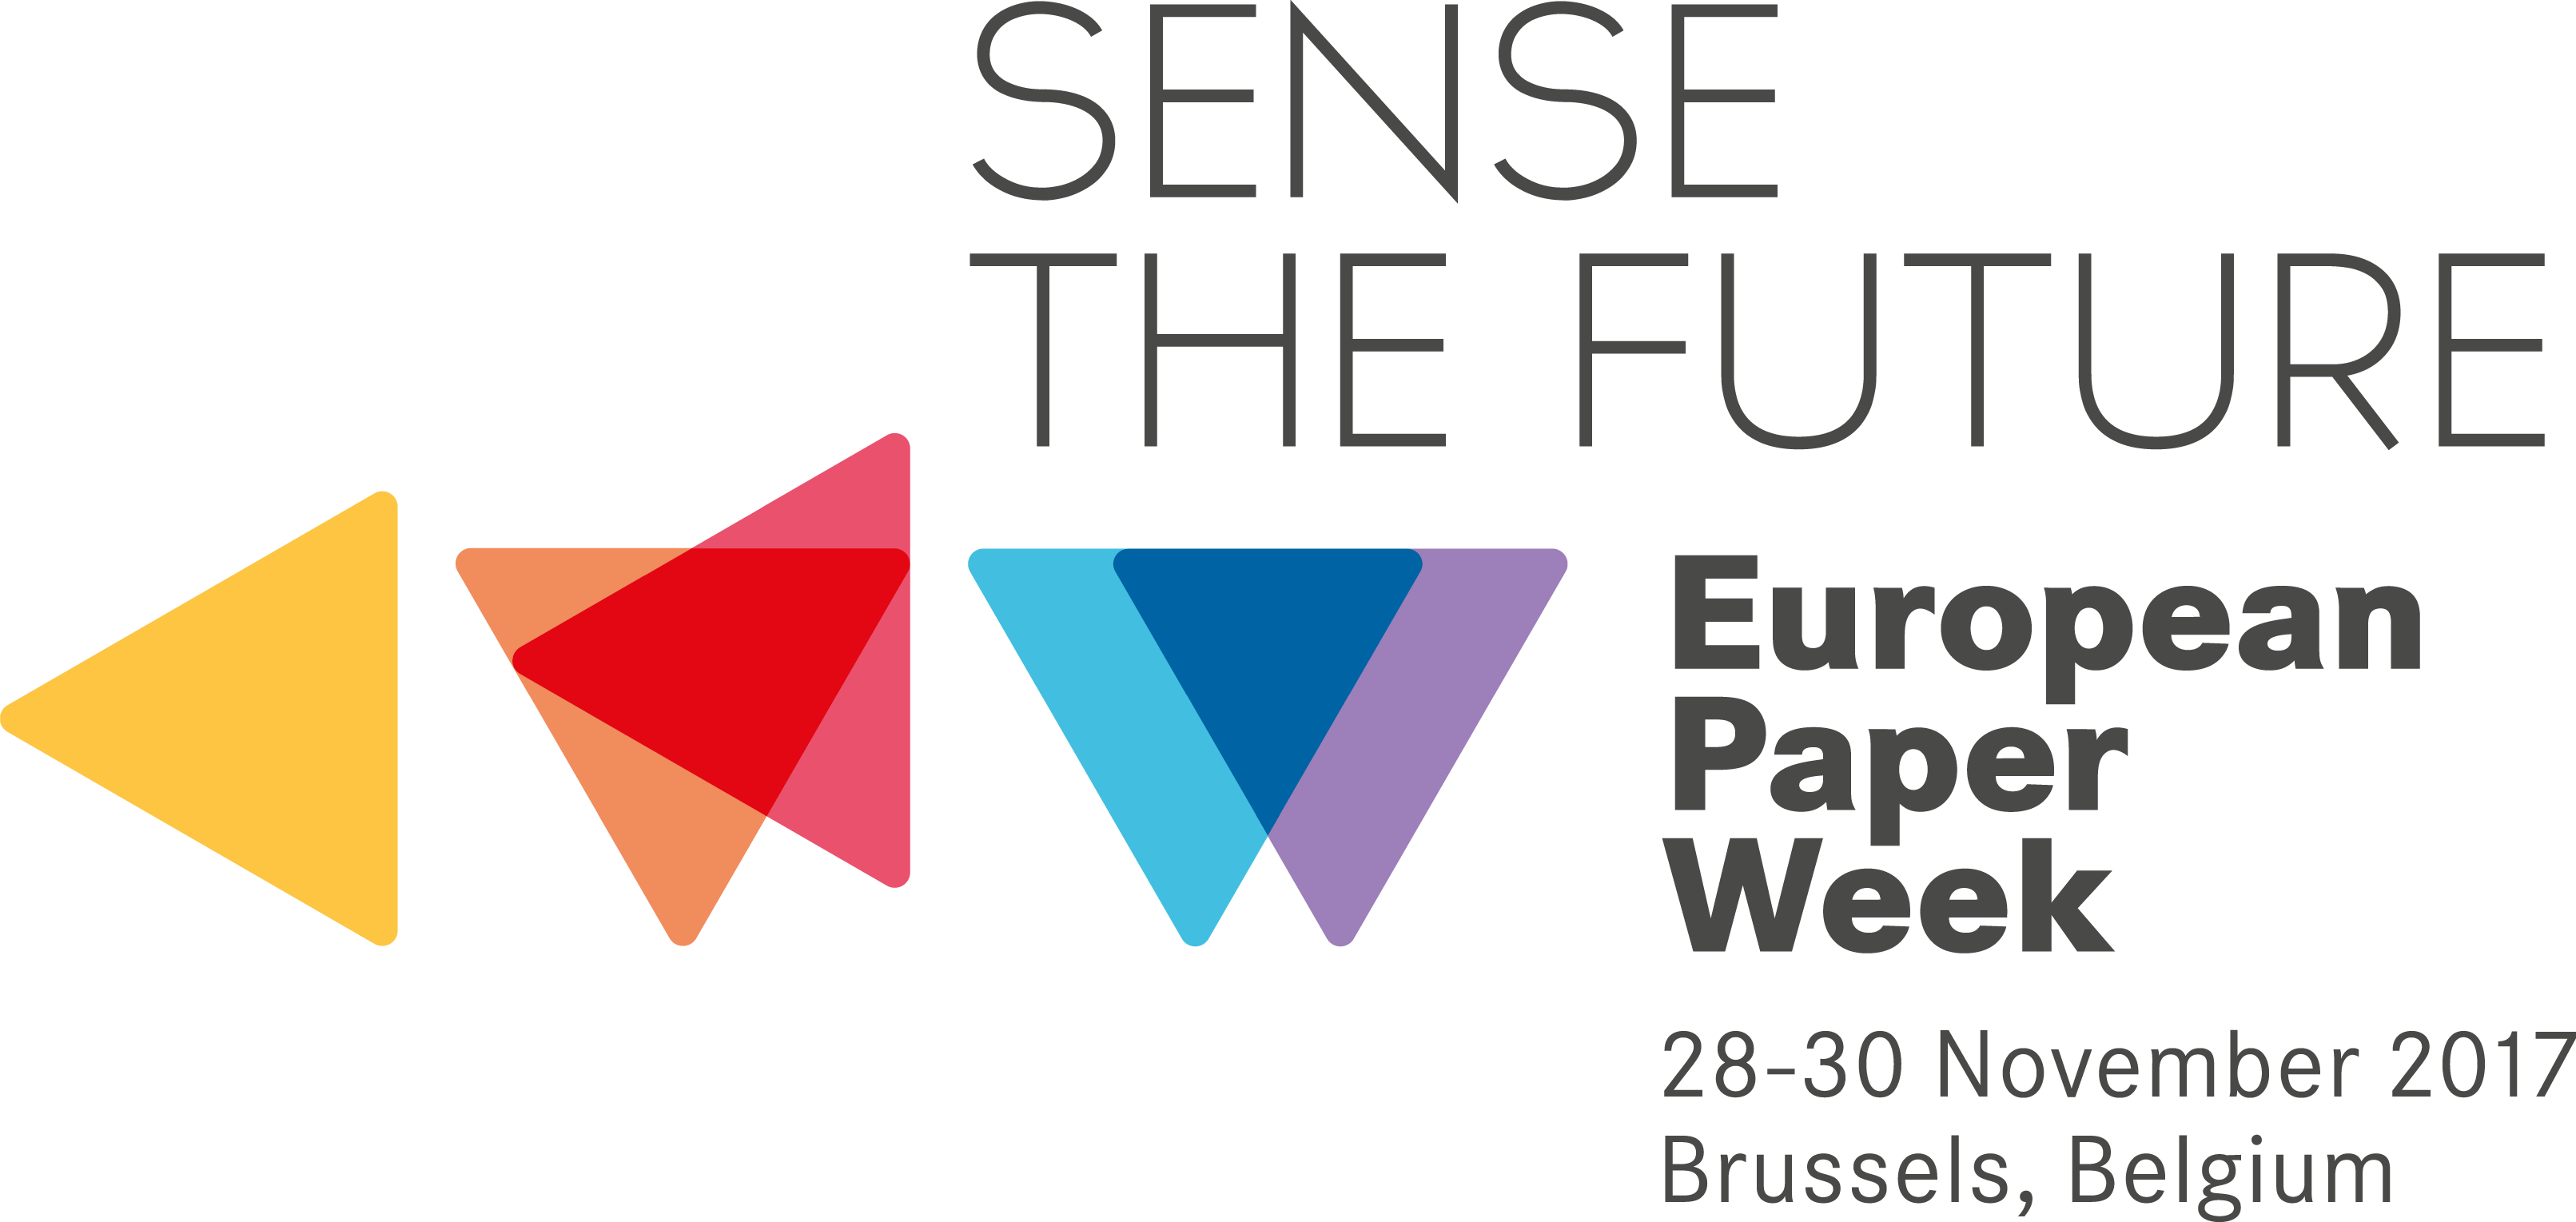 'Sense the Future' at European Paper Week 2017. Registrations now open